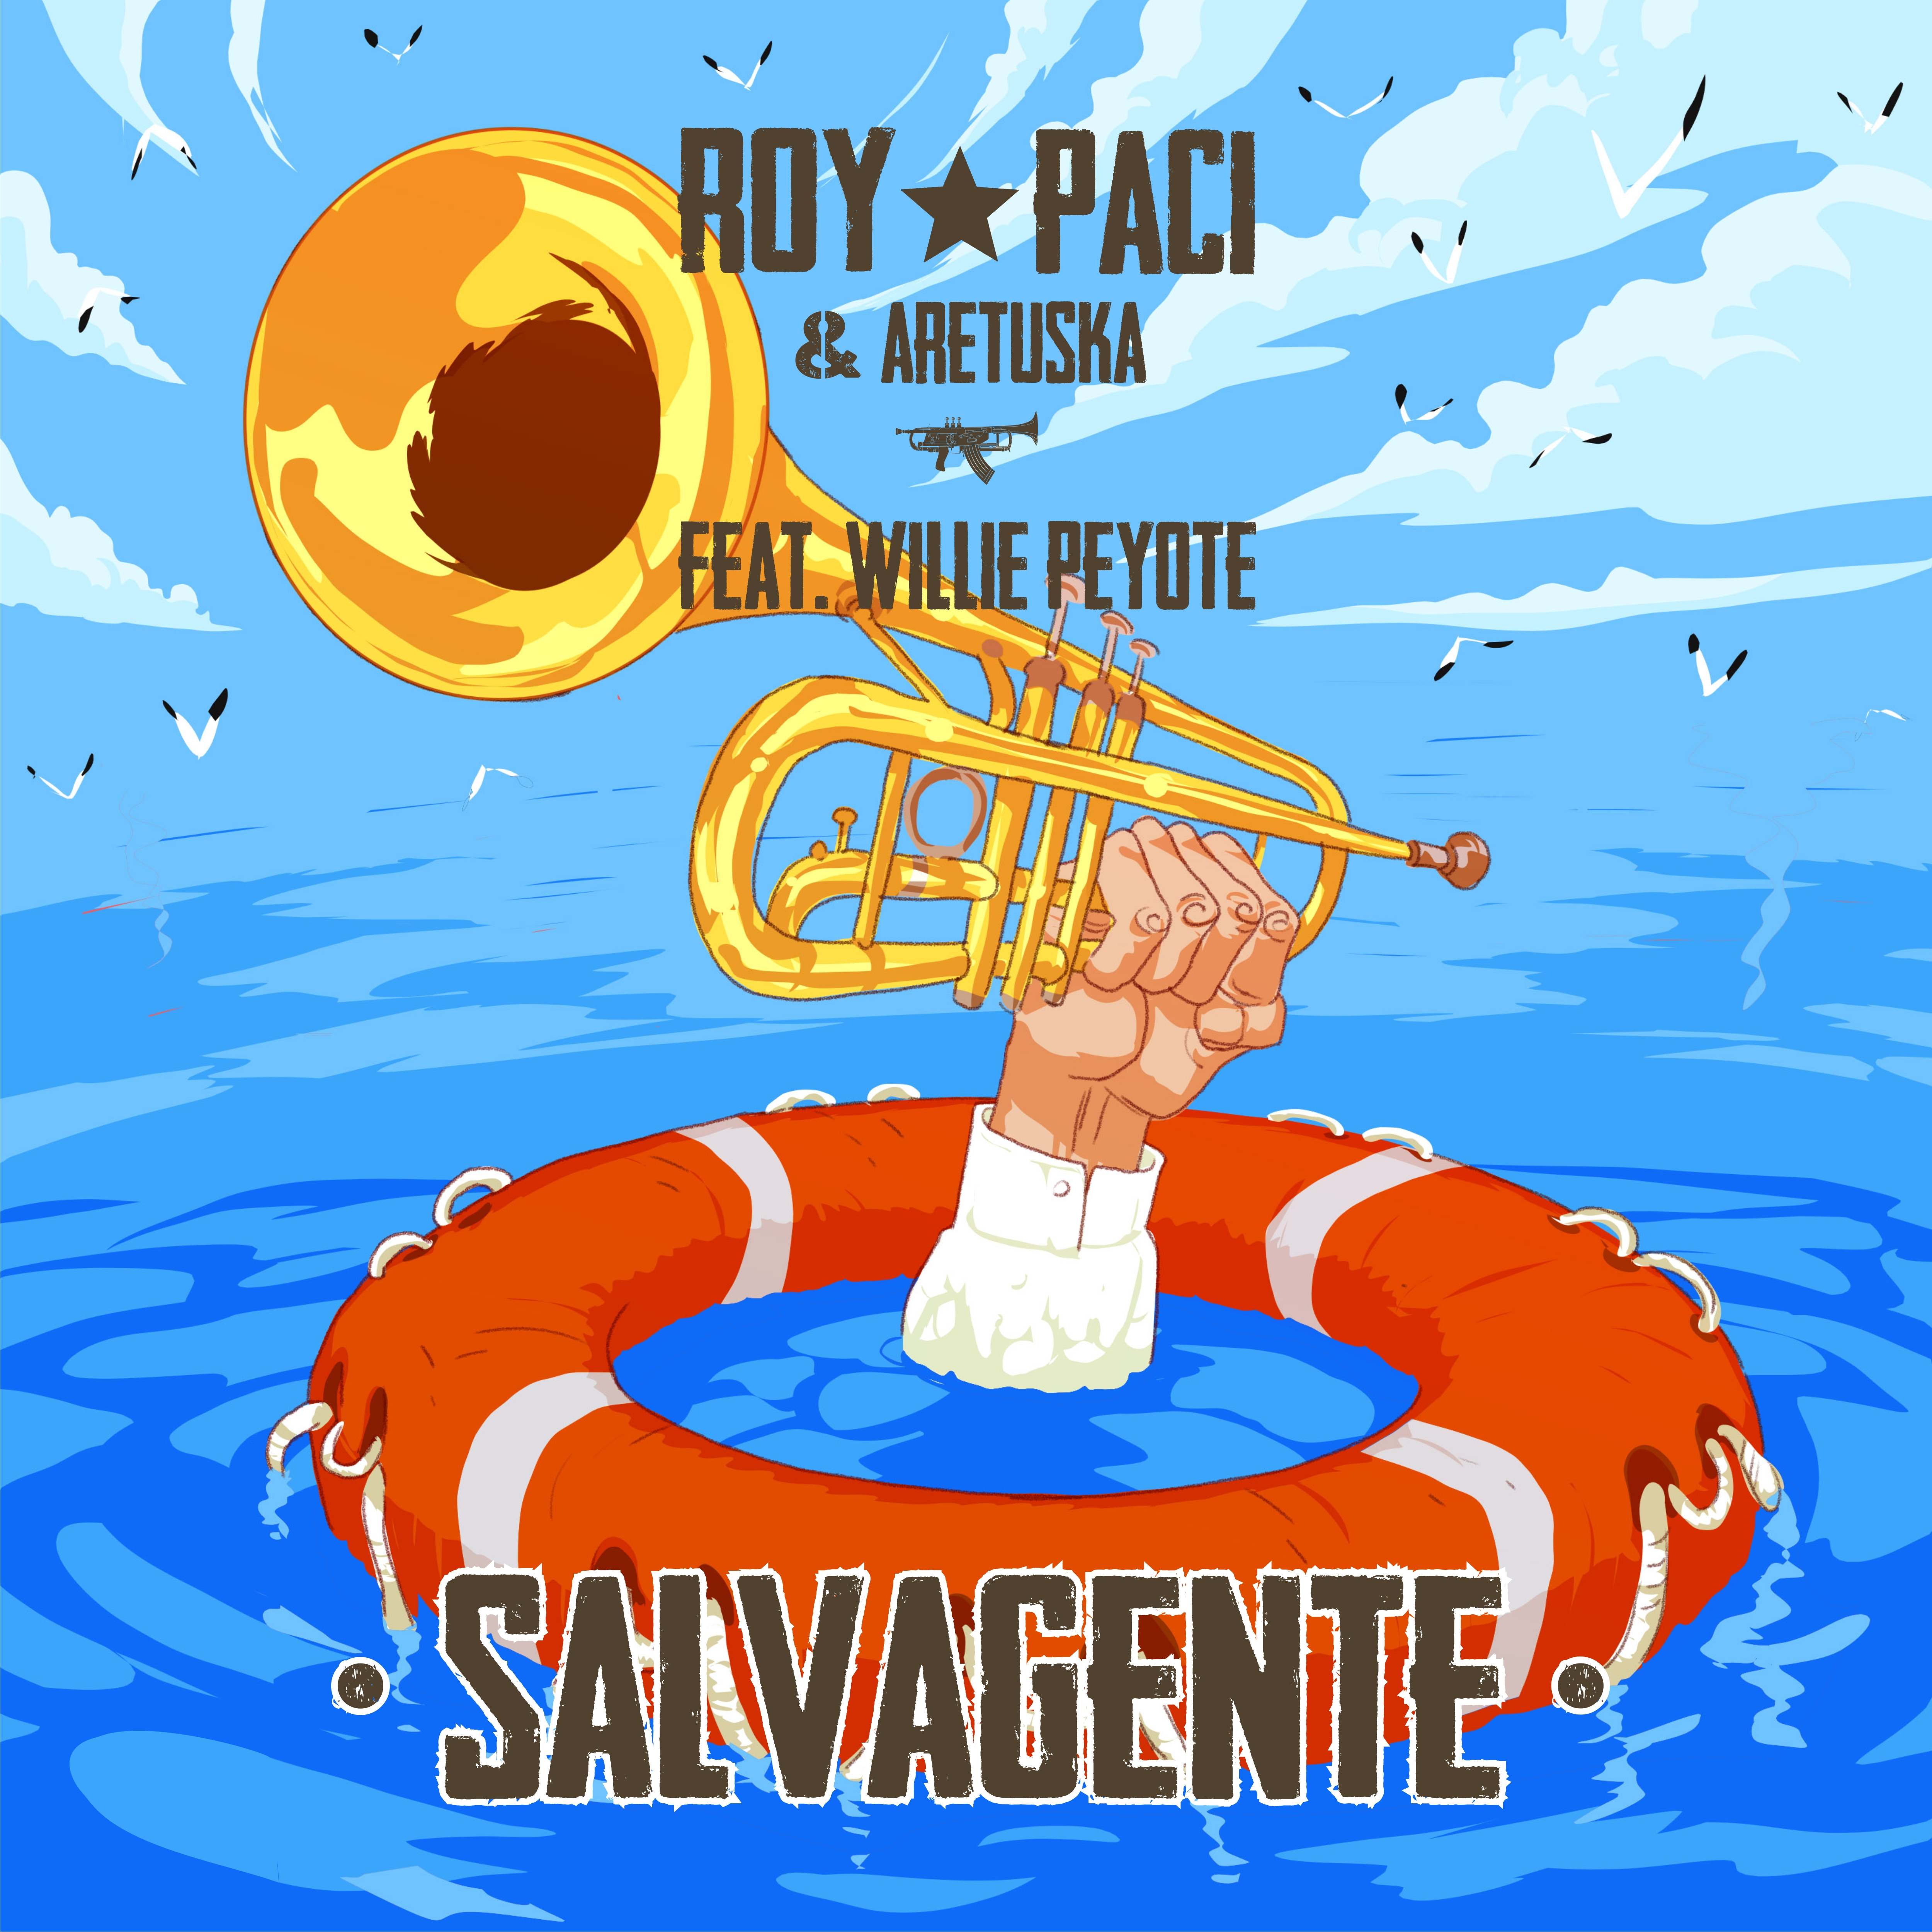 Cover_Salvagente - Artwork_Lelio Bonaccorso - Graphic design_Luca Molinaro